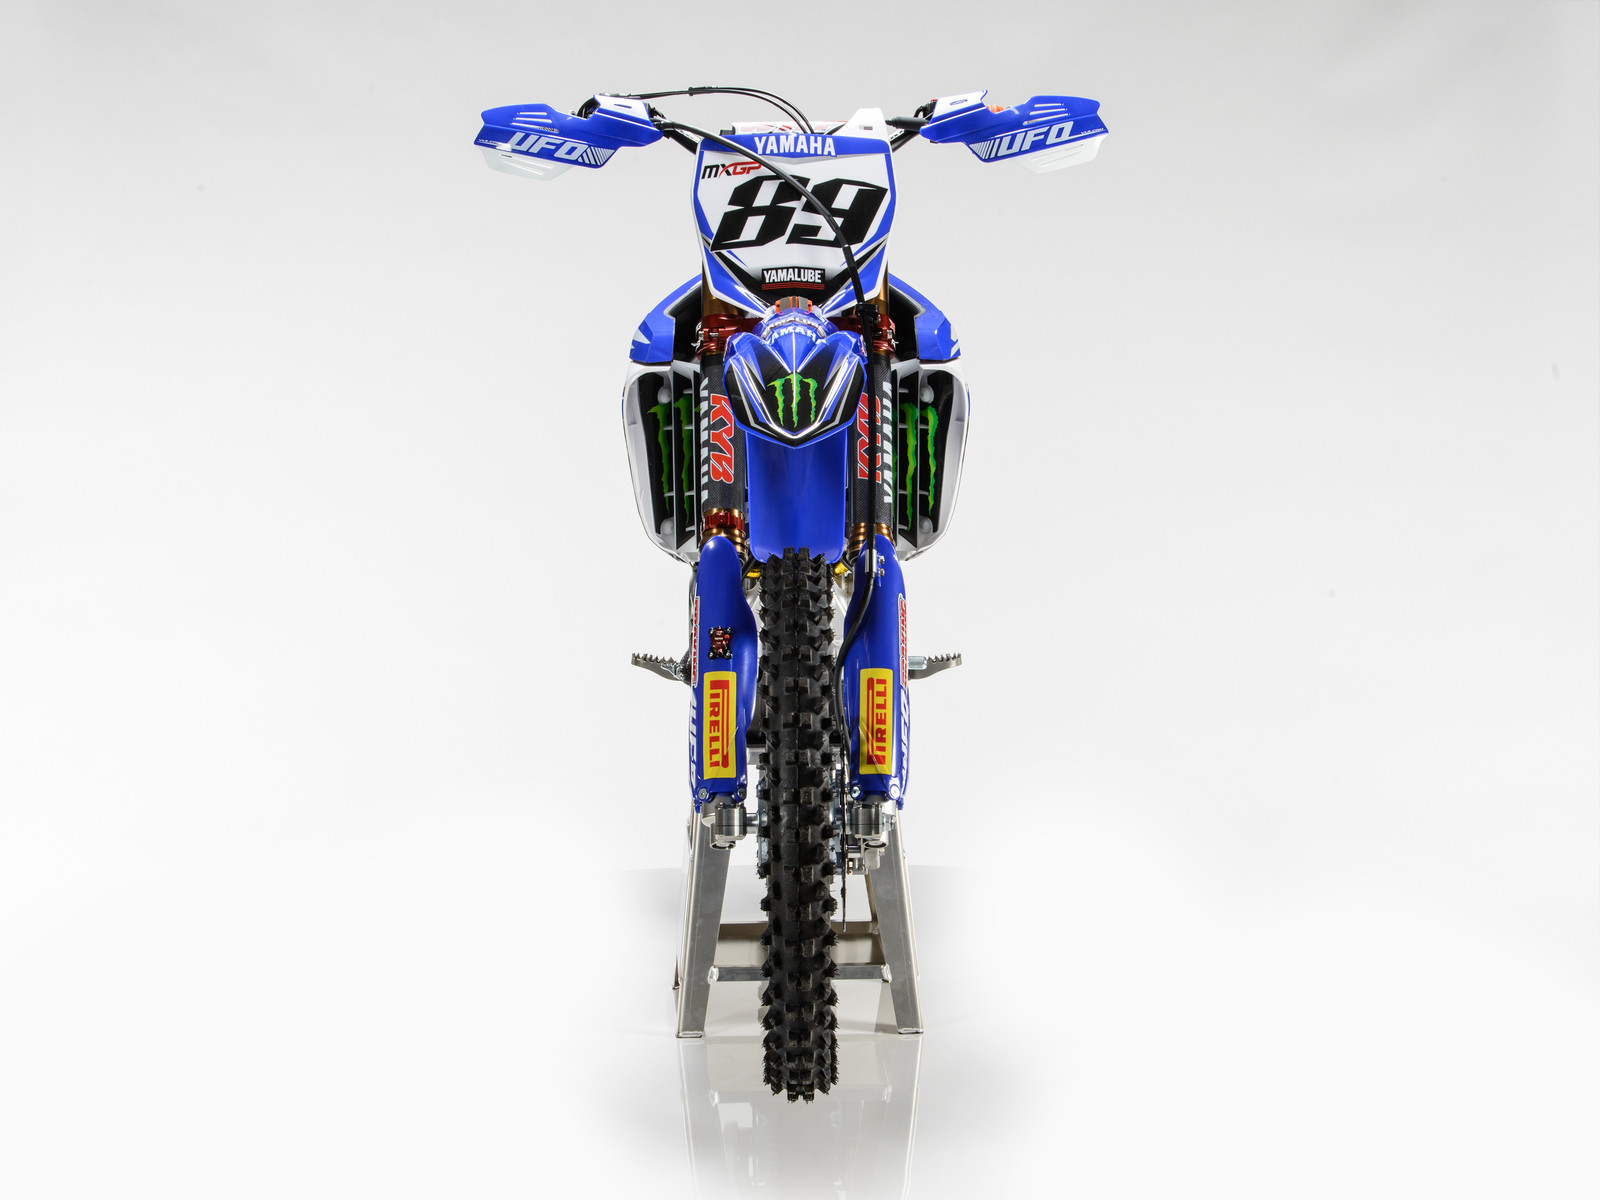 Jeremy van Horebeek's 2017 Monster Energy Yamaha Factory YZ450FM - First Look: 2017 Monster Energy & Wilvo Yamaha MXGP Teams - Motocross Pictures - Vital MX